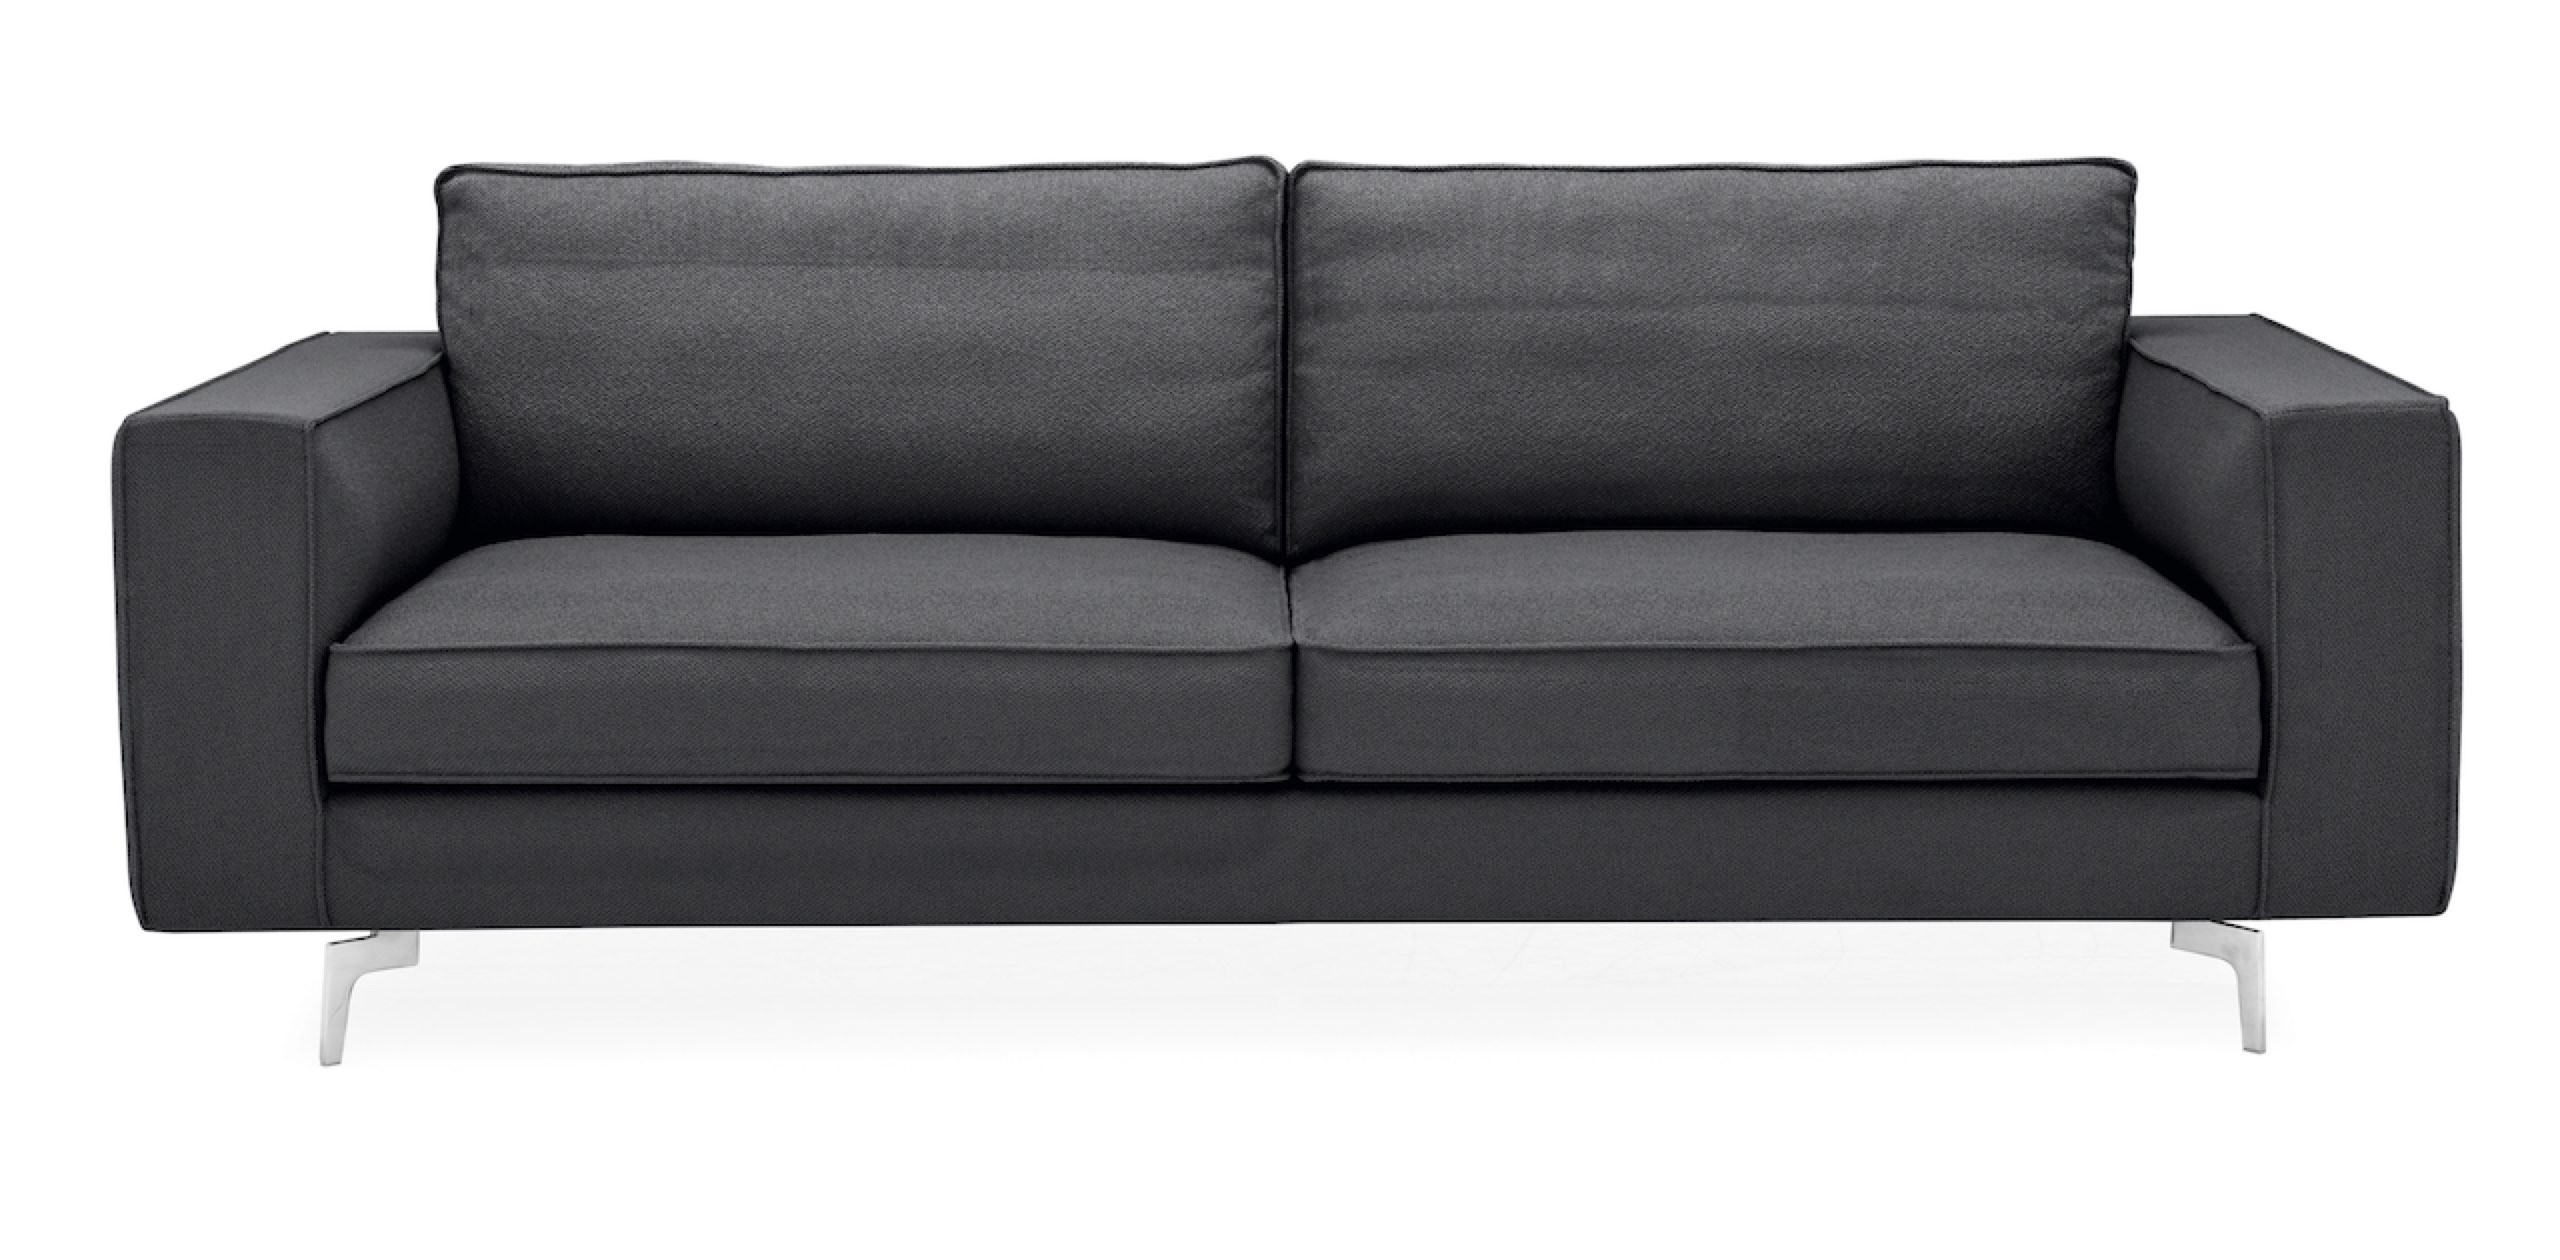 reclining sofa brands marshmallow 2 in 1 flip open mickey mouse calligaris square – frank mc gowan